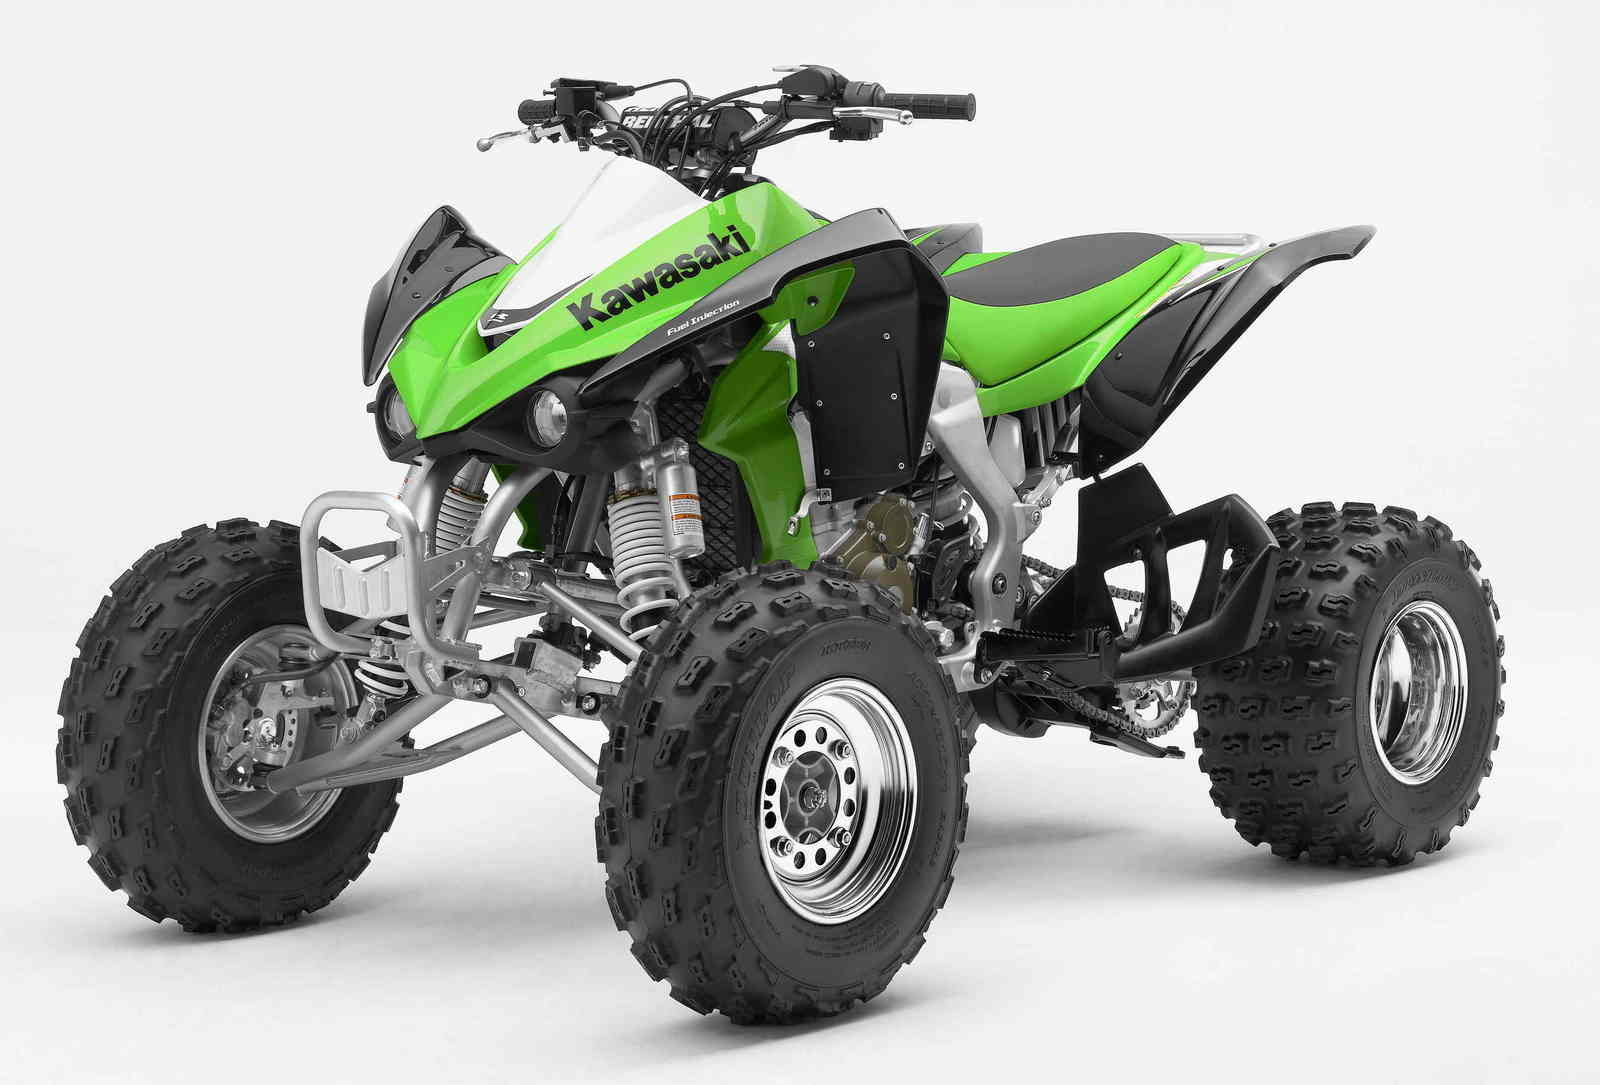 2008 kawasaki kfx450r review gallery top speed. Black Bedroom Furniture Sets. Home Design Ideas